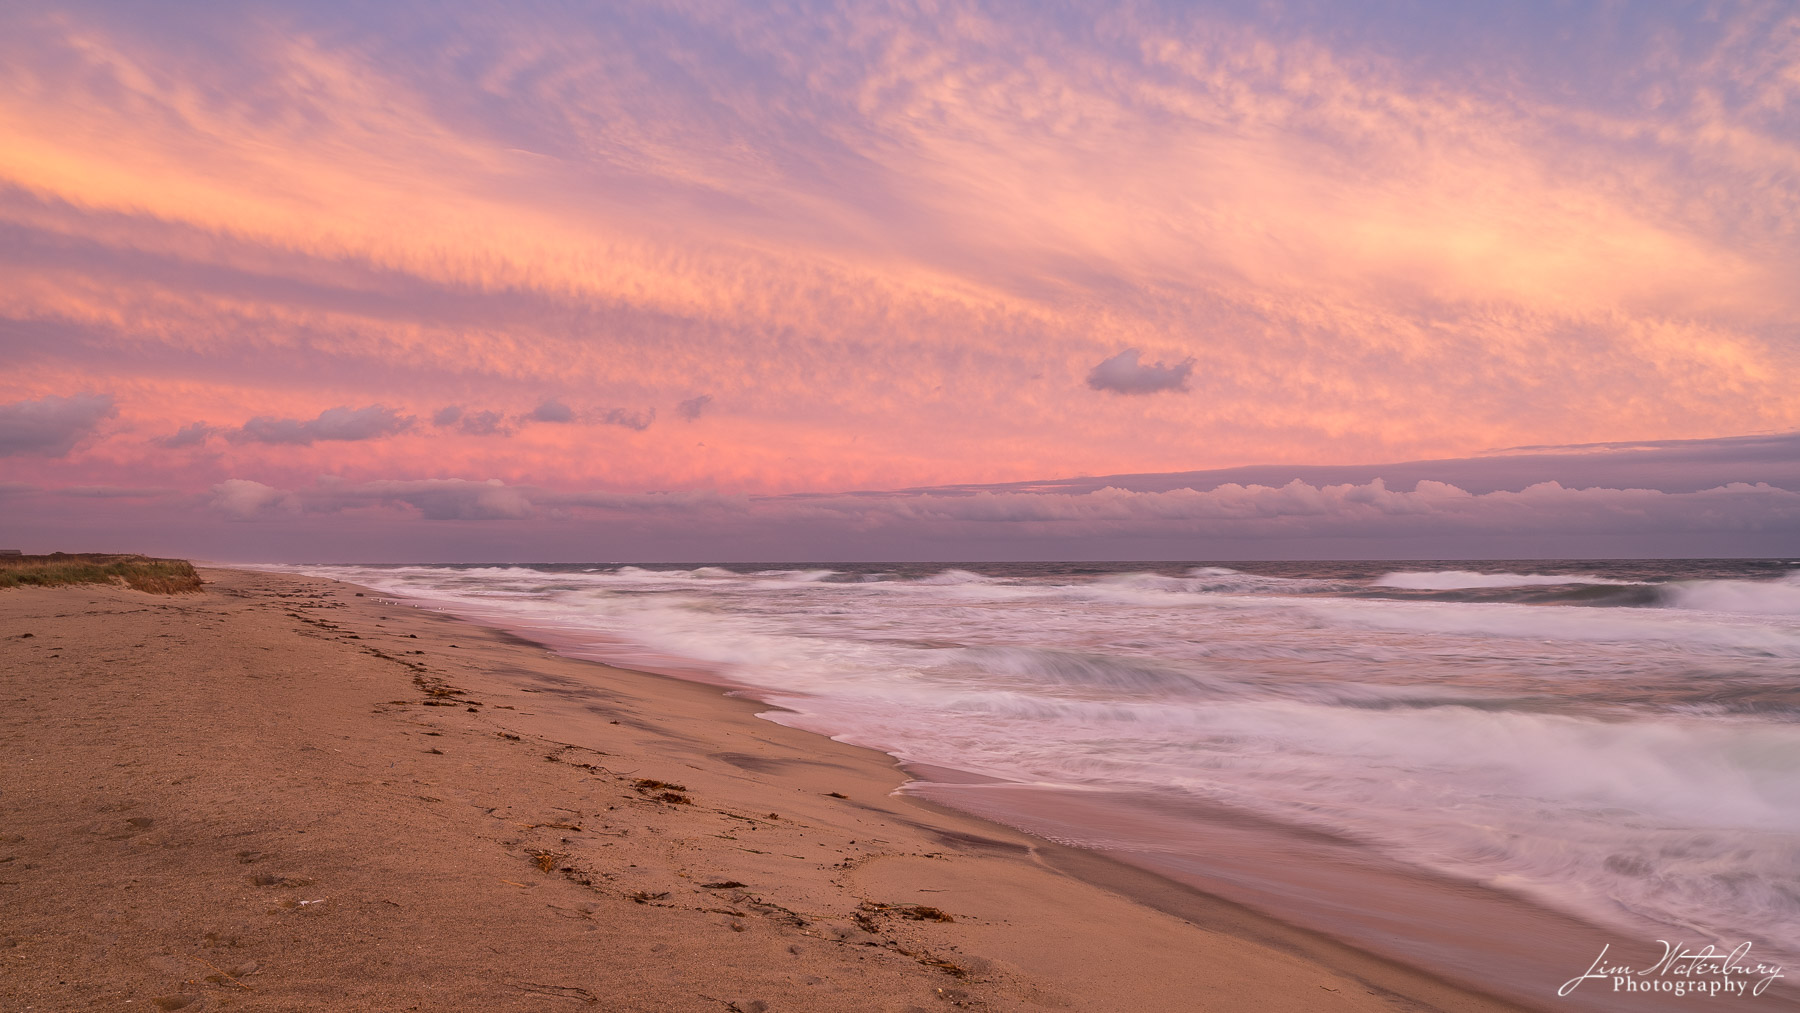 waves, ocean, seascape, pink, clouds, photo